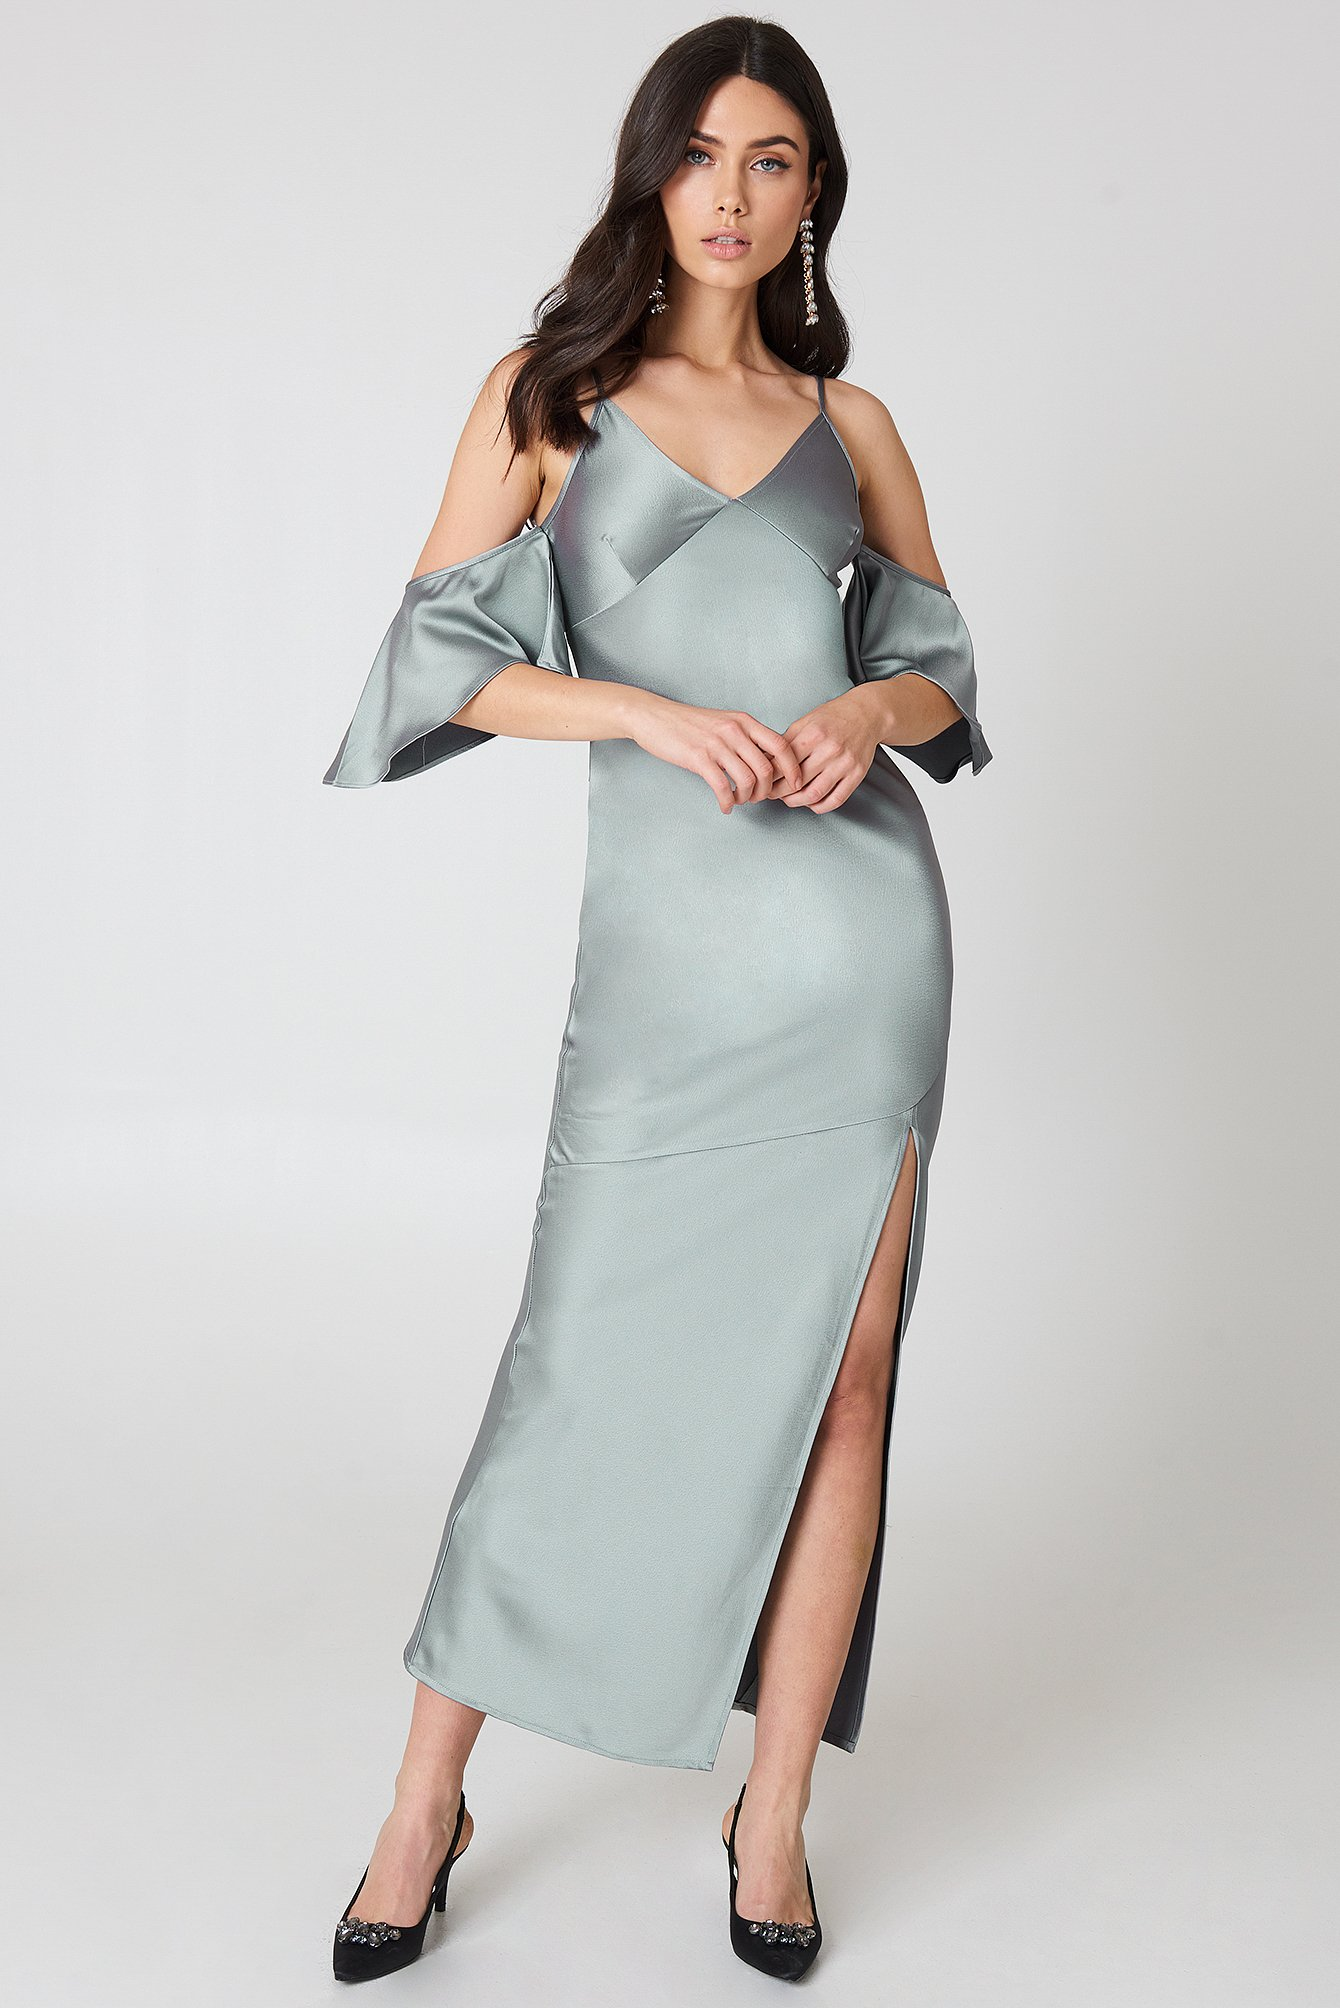 Kendra Dress NA-KD.COM